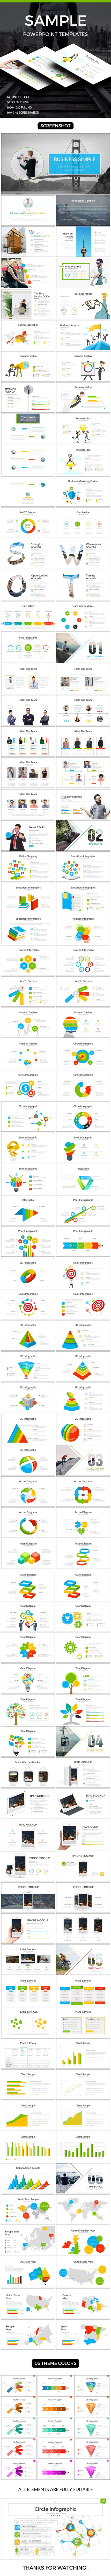 Business sample powerpoint template download here https business sample powerpoint template download here httpsgraphicriver itembusiness sample powerpoint template17342797refksioks toneelgroepblik Image collections